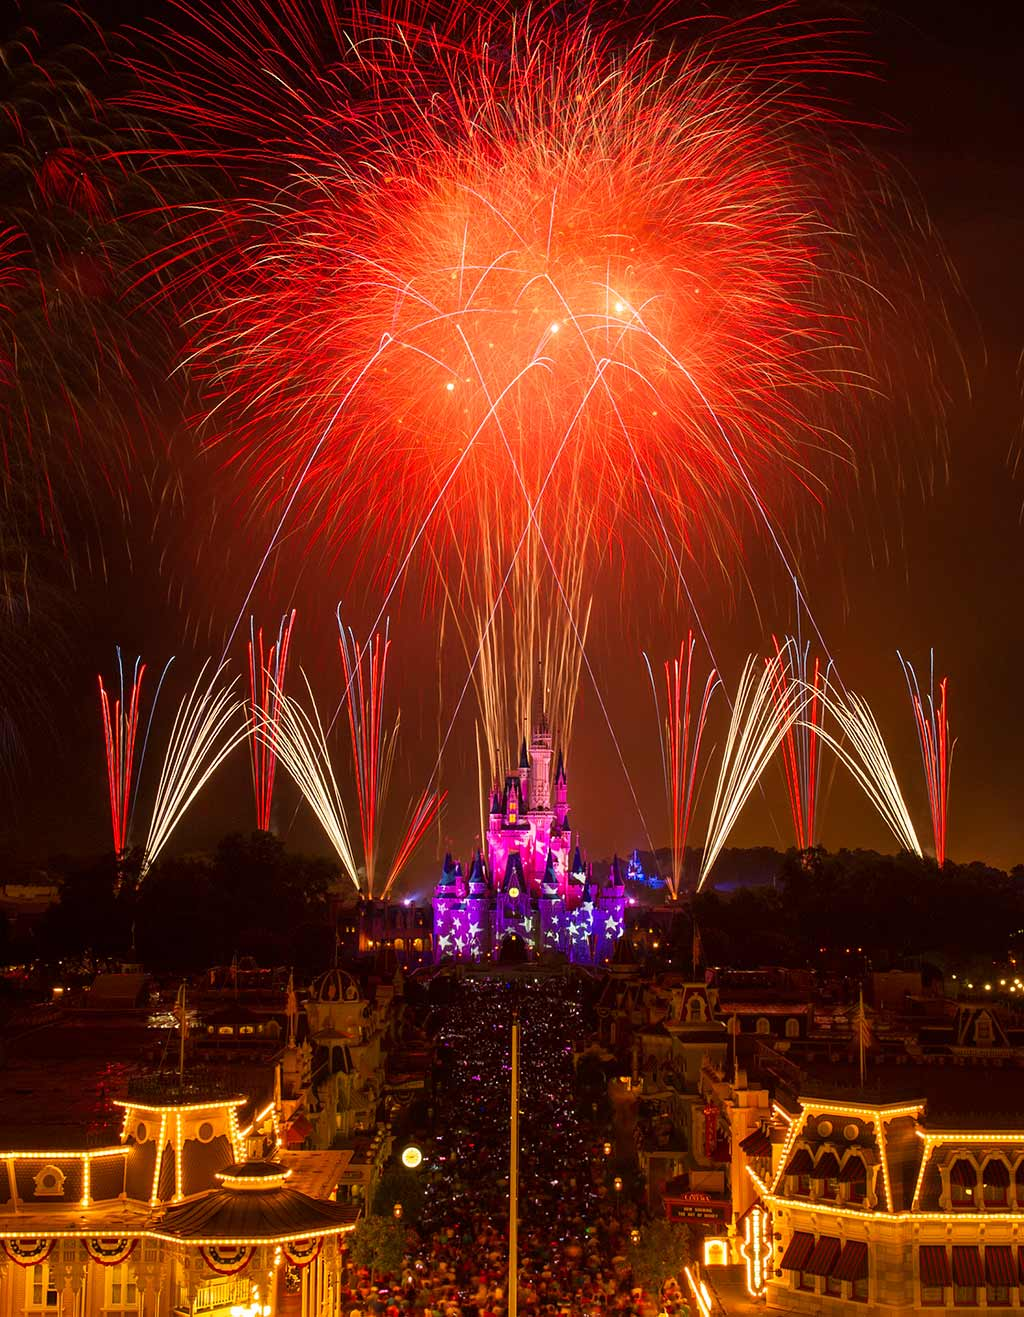 View of Magic Kingdom fireworks from Main Street U.S.A.